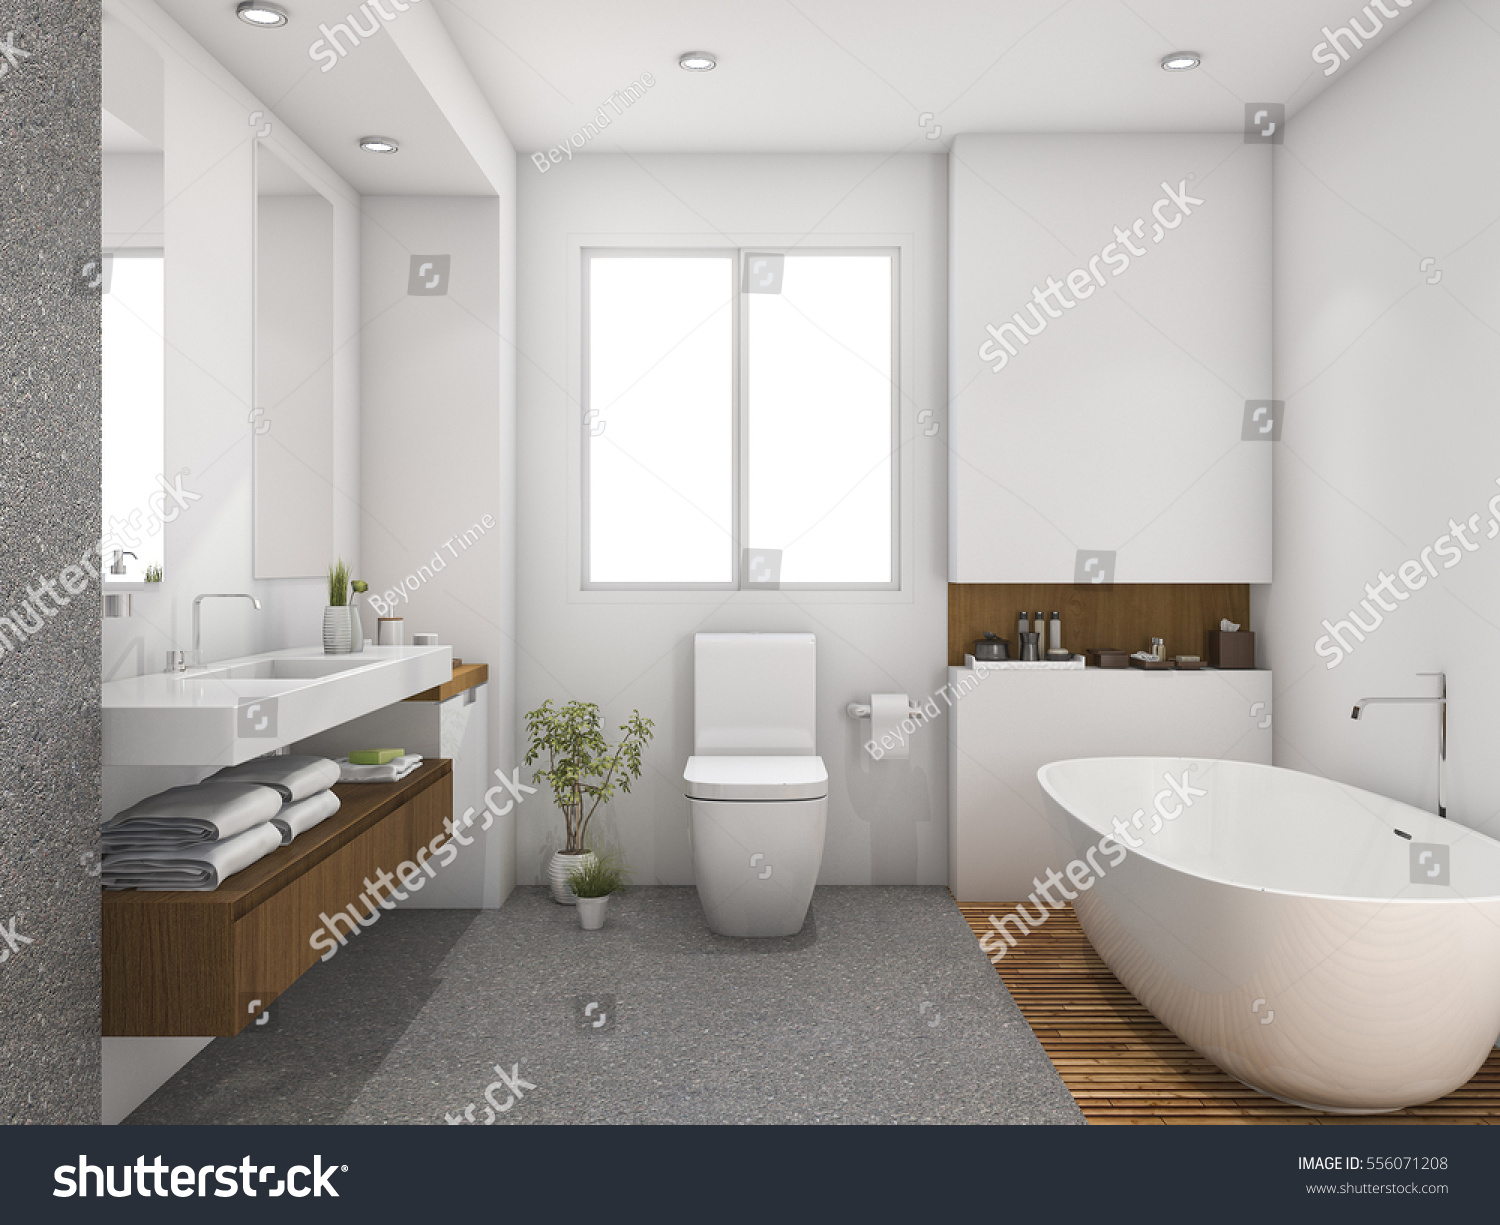 Royalty Free Stock Illustration of 3 D Rendering Wood Tile Design ...